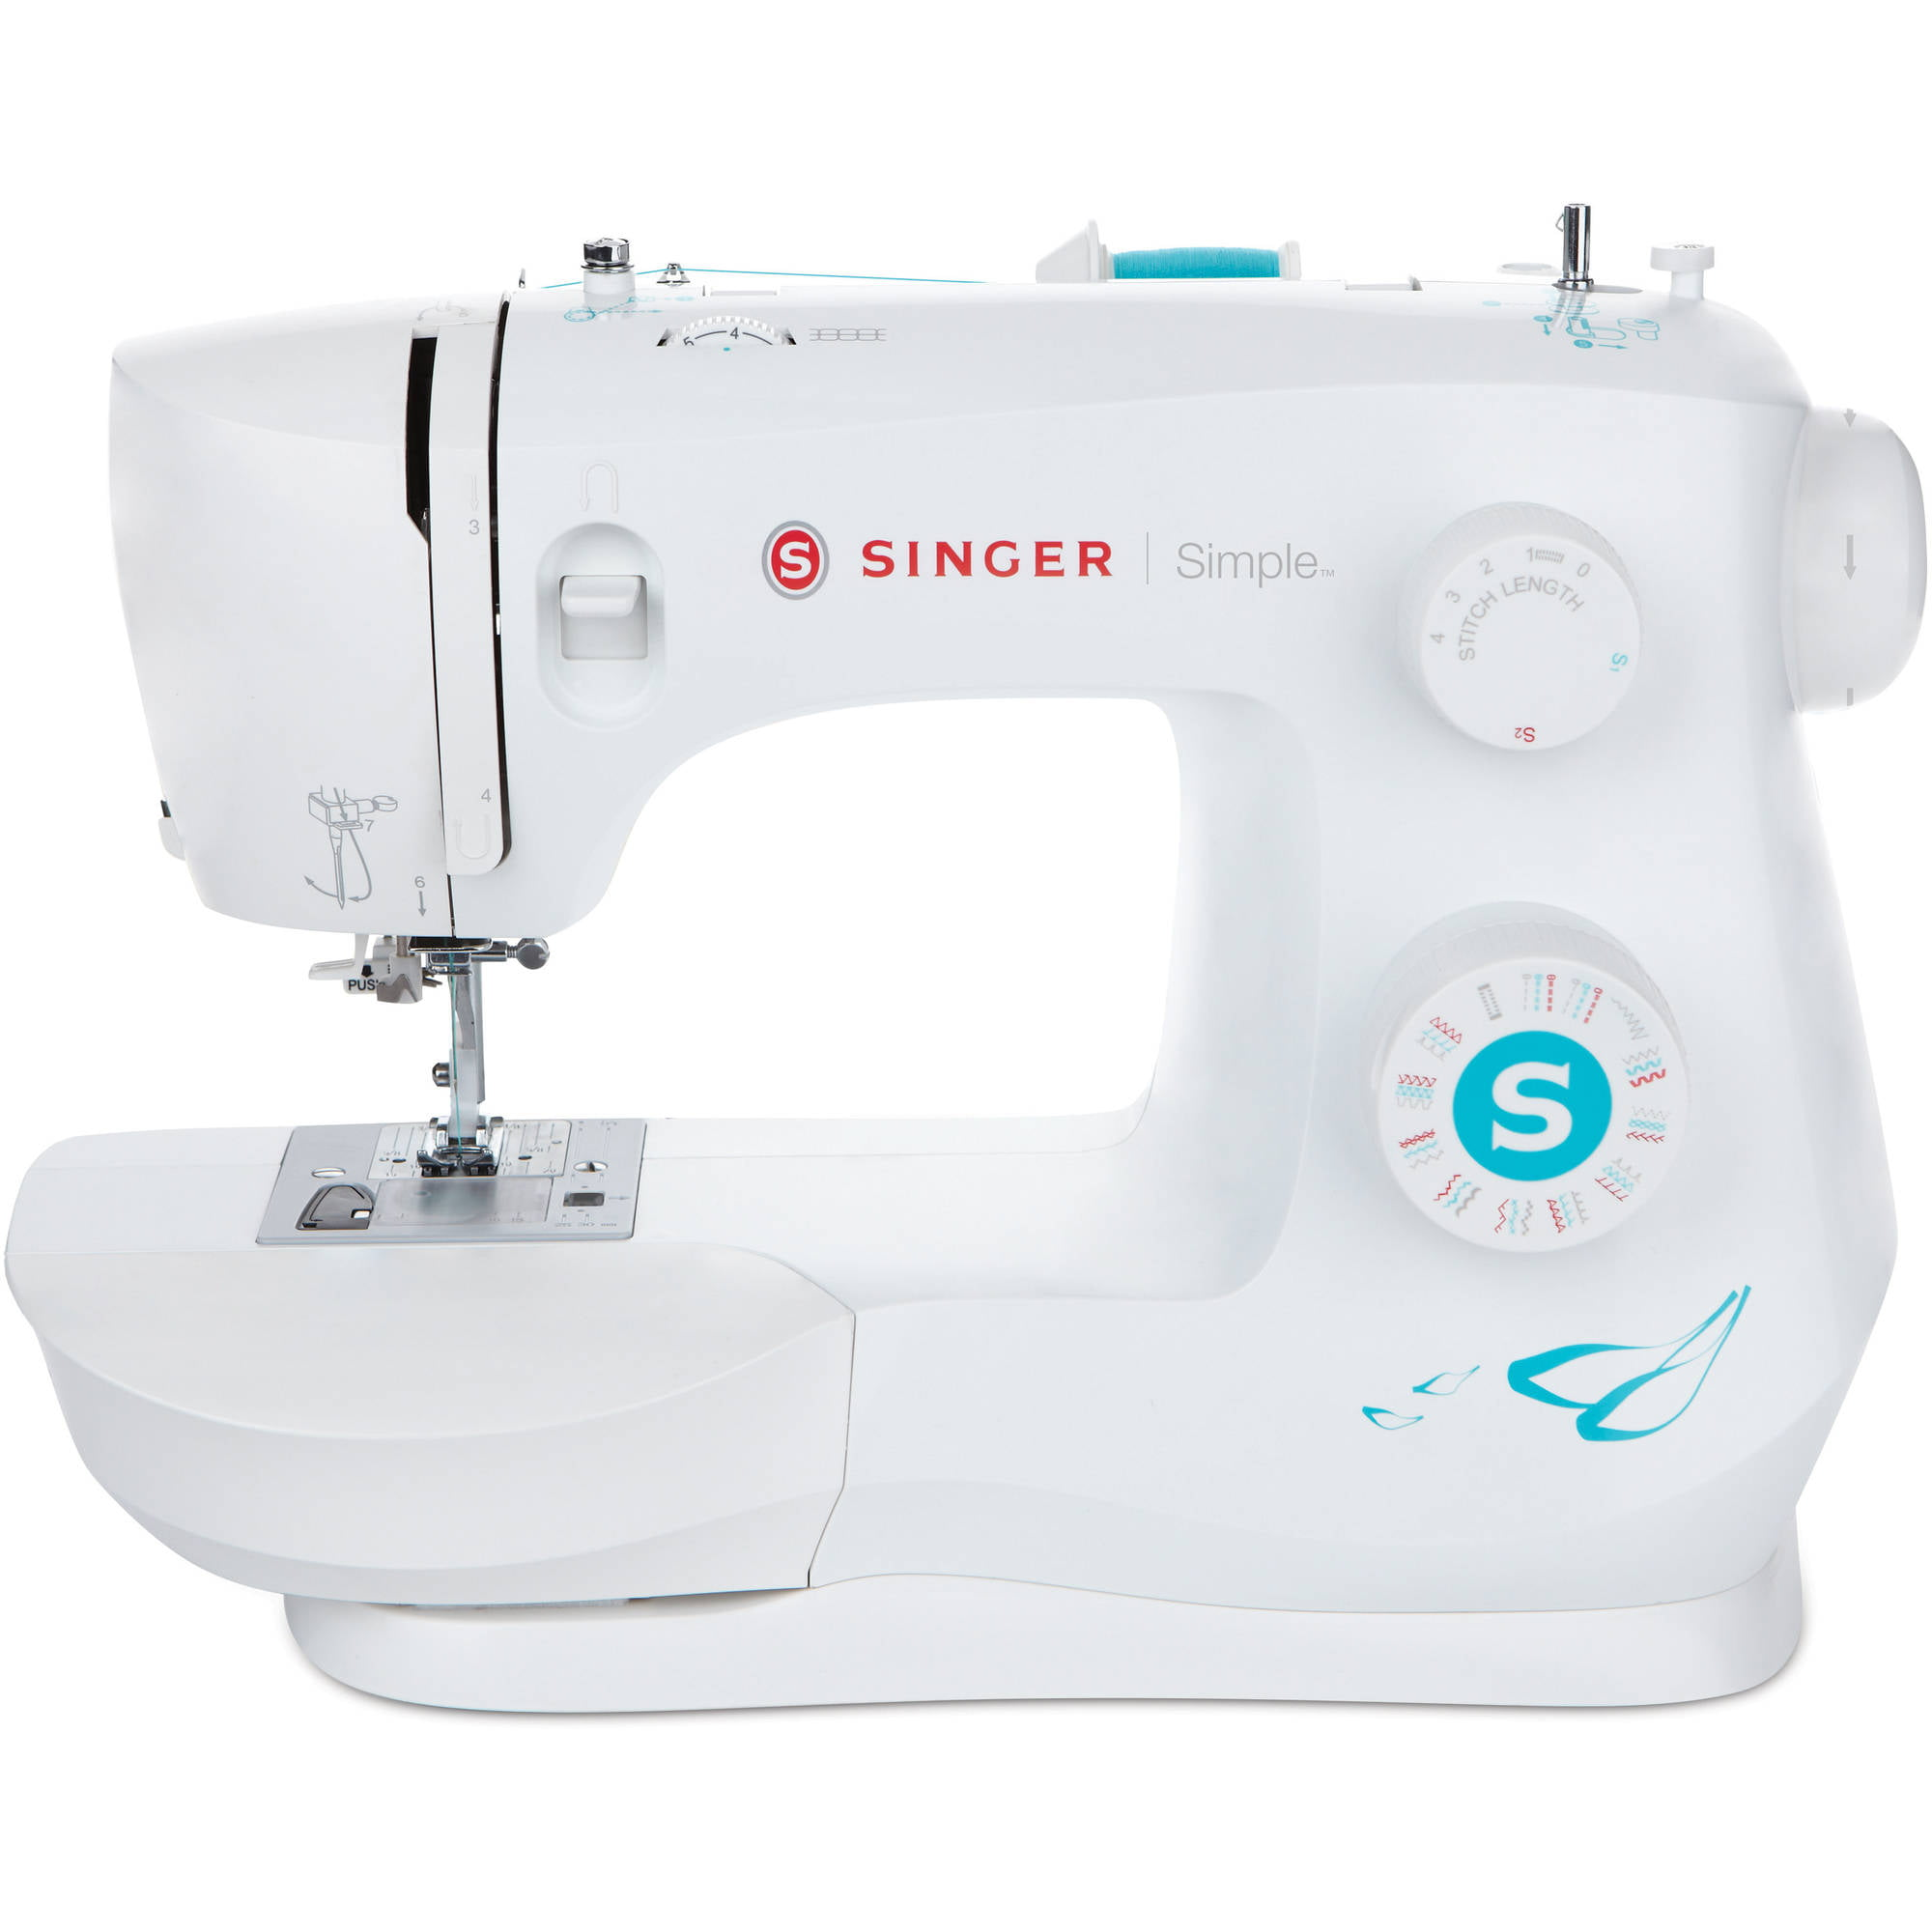 Sew Easy Sewing Center has been serving the Greater Kansas City area since We specialize in sewing and embroidery machines, sergers. sewing furniture, and accessories as well as parts for machines.